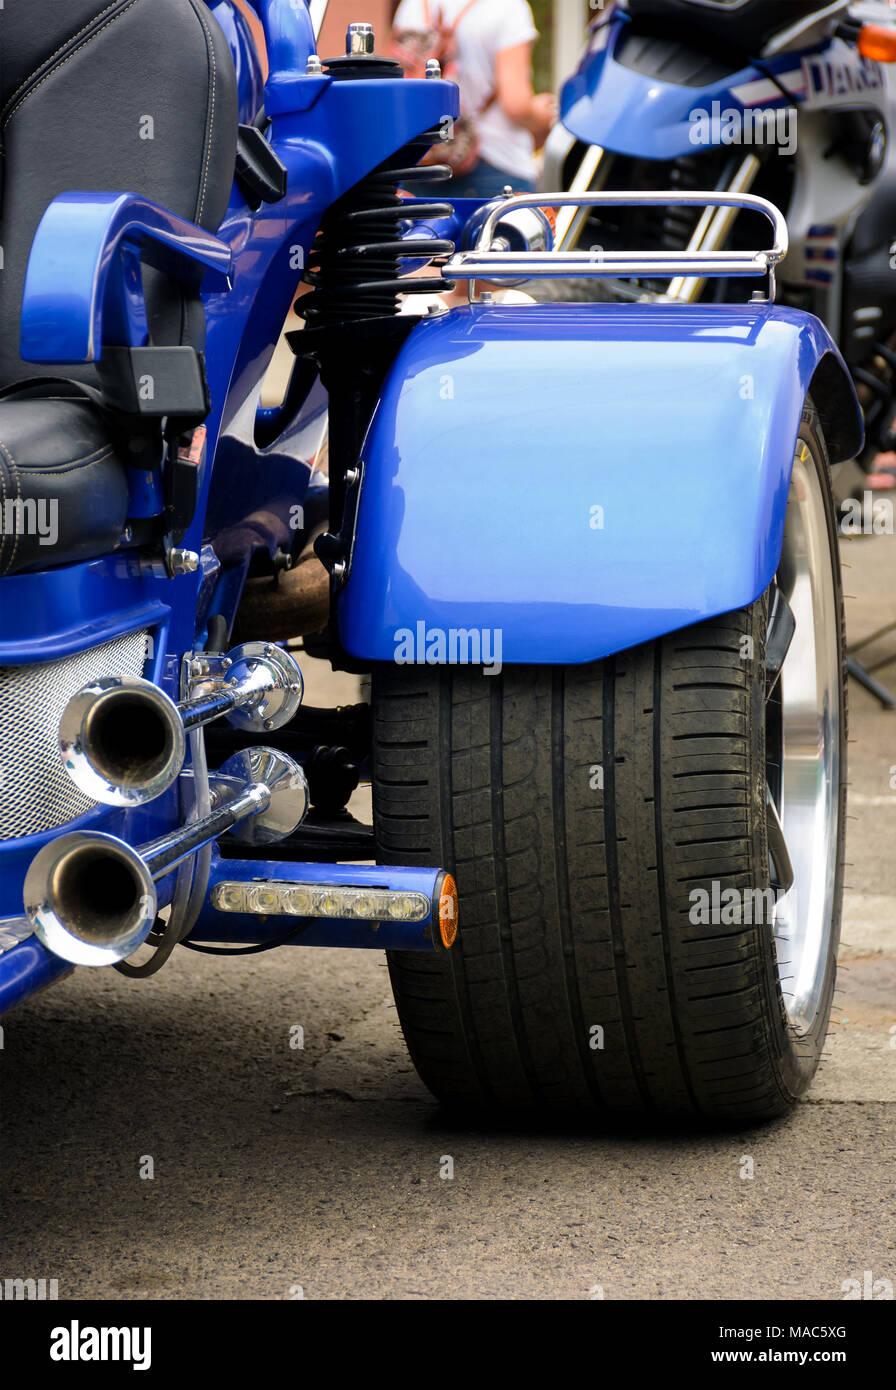 rear side of a blue motorcycle. lovely detail shot of lights and shiny exhaust pipes - Stock Image